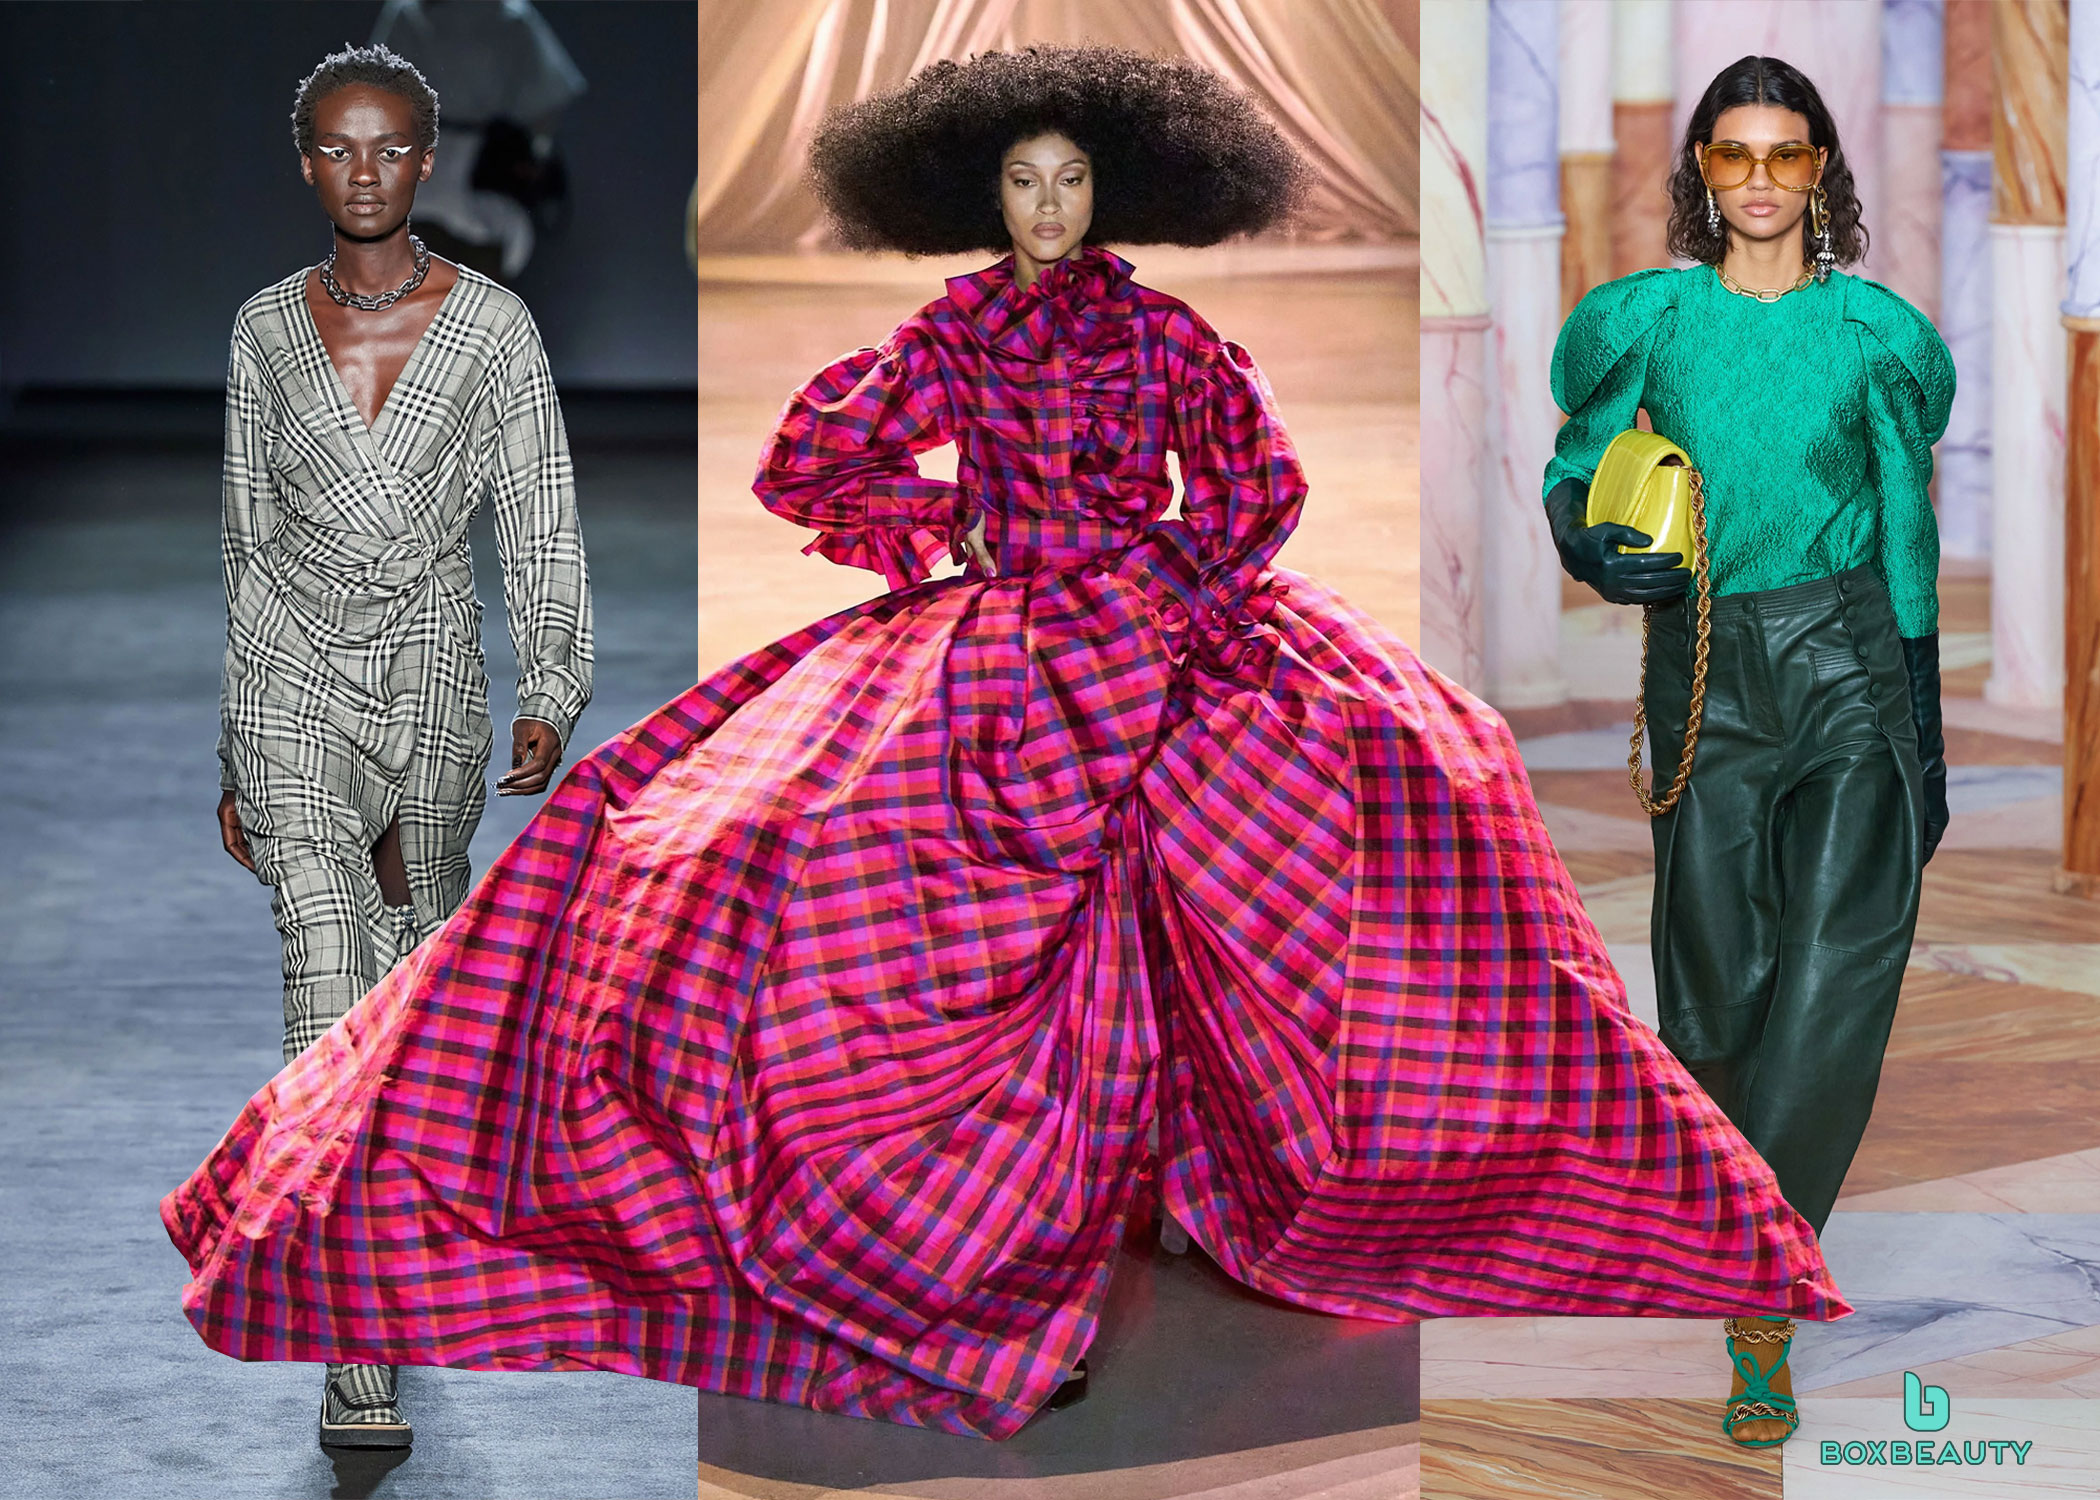 Fall 2020: The Trends You'll See According to New York Fashion Week